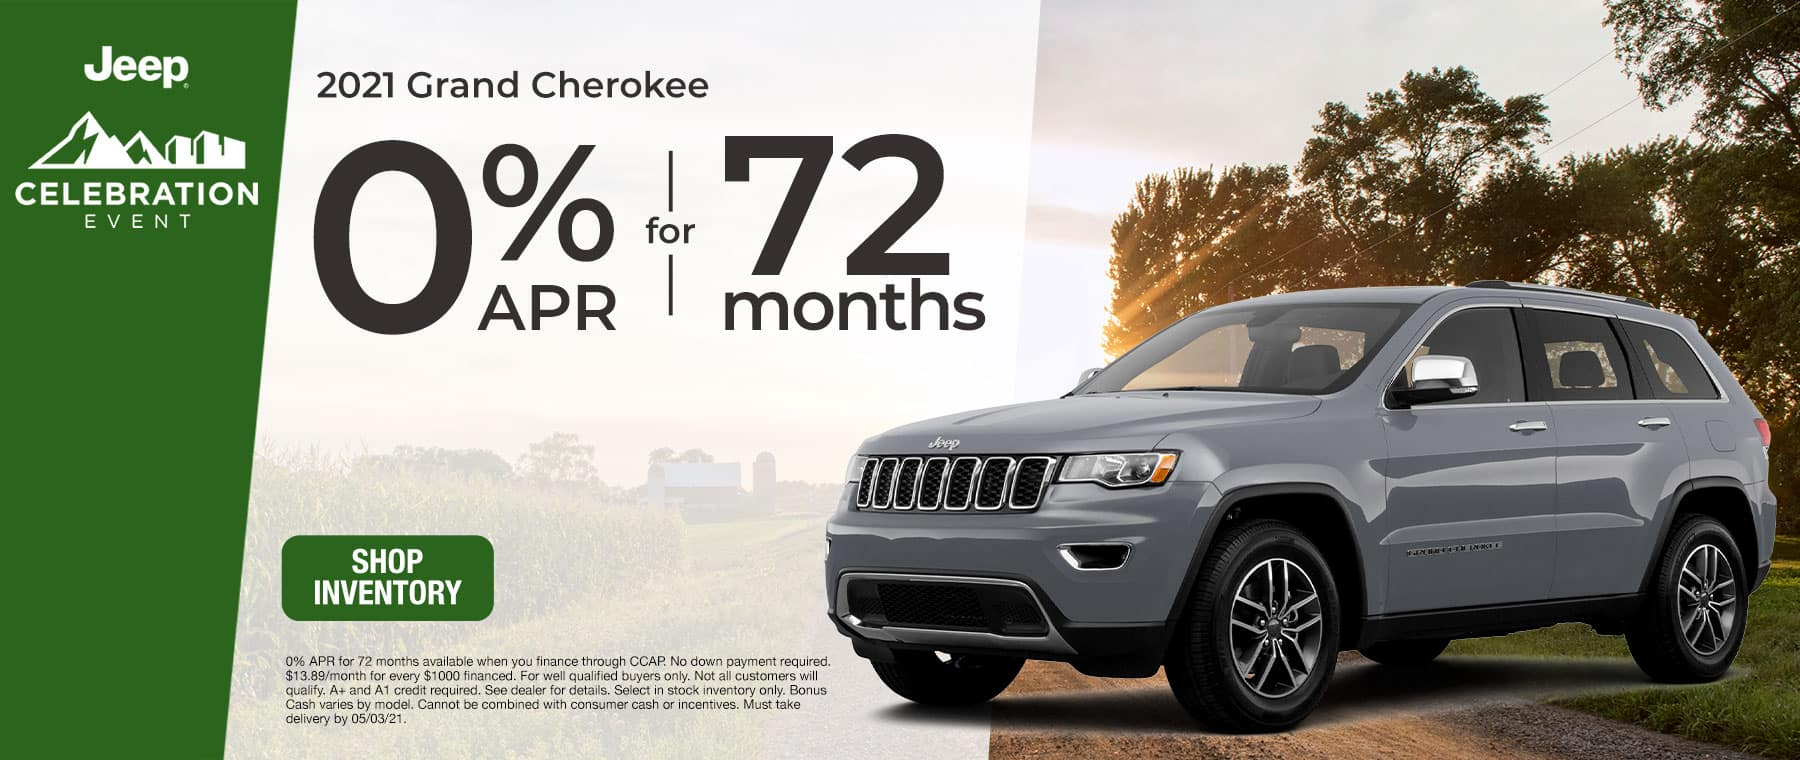 2021 Grand Cherokee - 0% APR for 72 Months